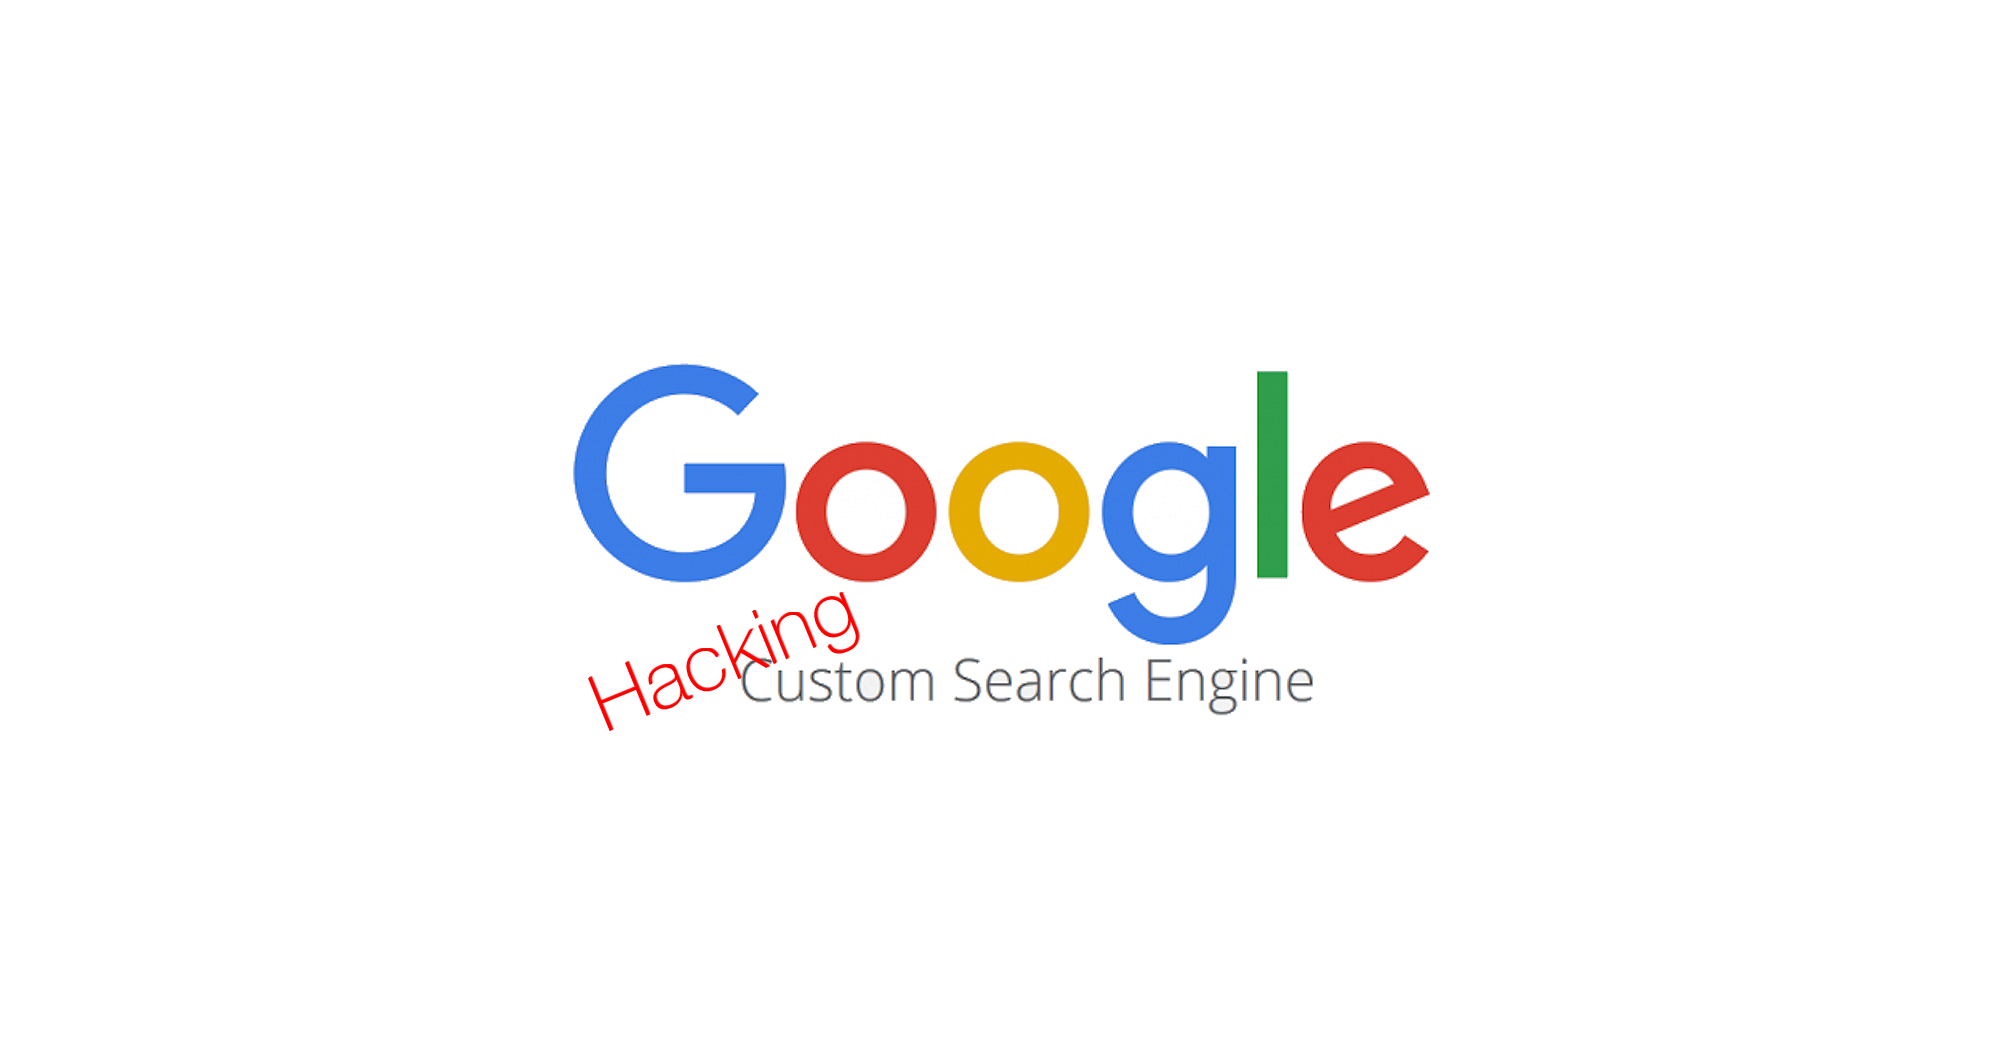 hacking google custom search engine jan tegze medium as a recruiter or sourcer you are x raying the same sites over and over again in all corners of the internet looking for new candidates or hidden resumes